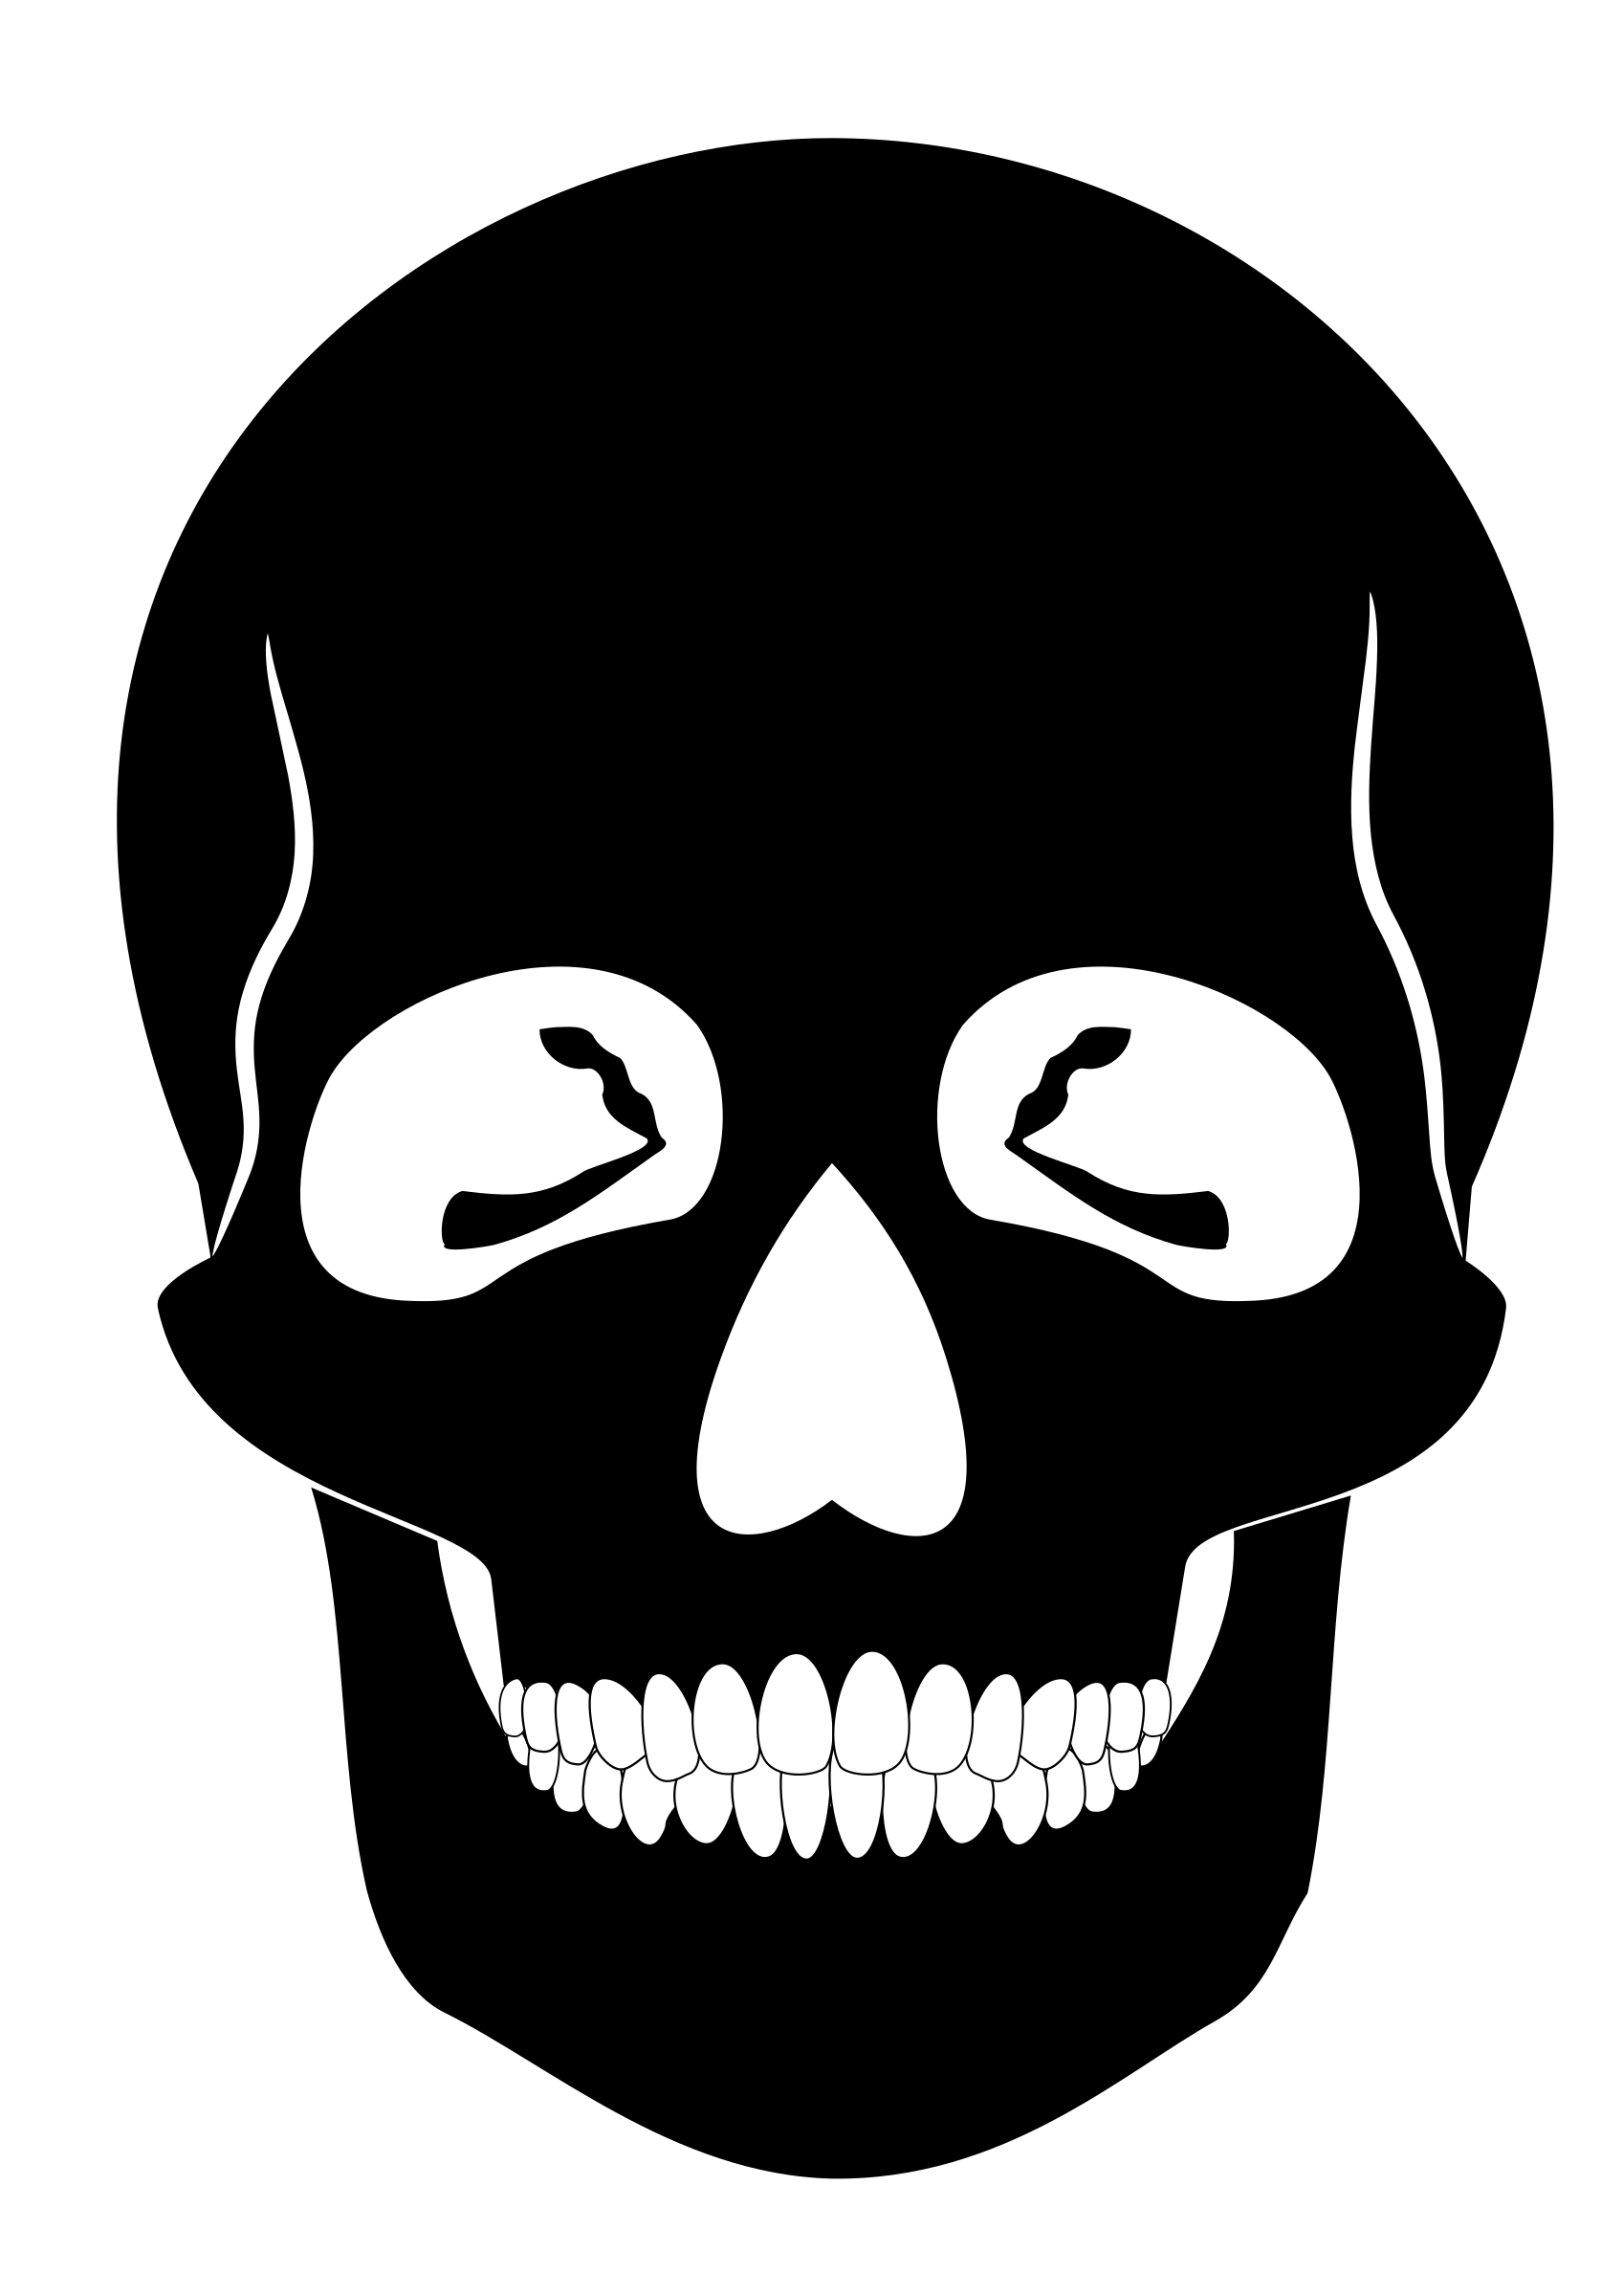 Mouth clipart skull. Big image png